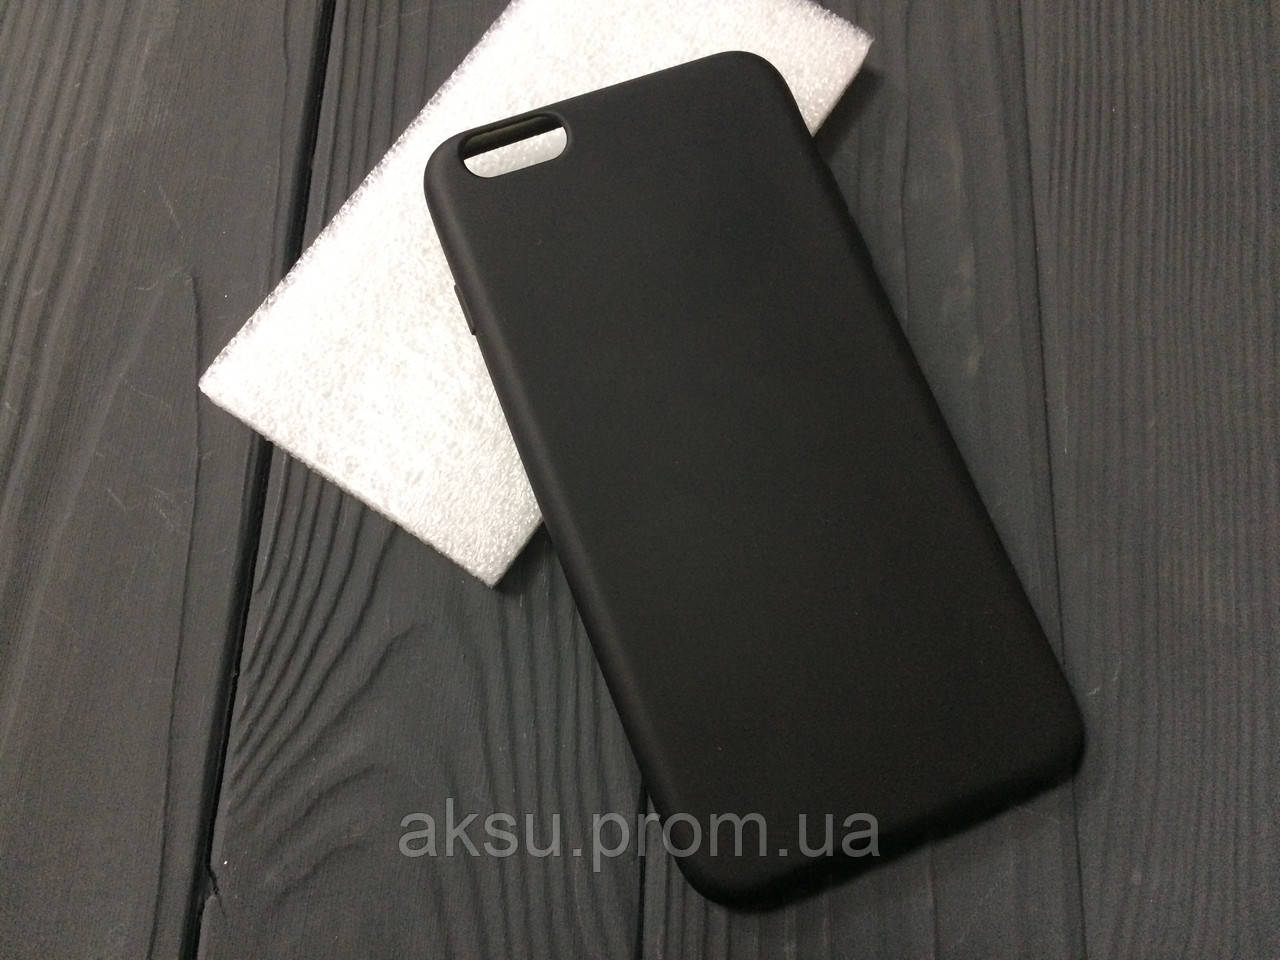 Чехол Mat для iPhone 6 Plus / 6s Plus